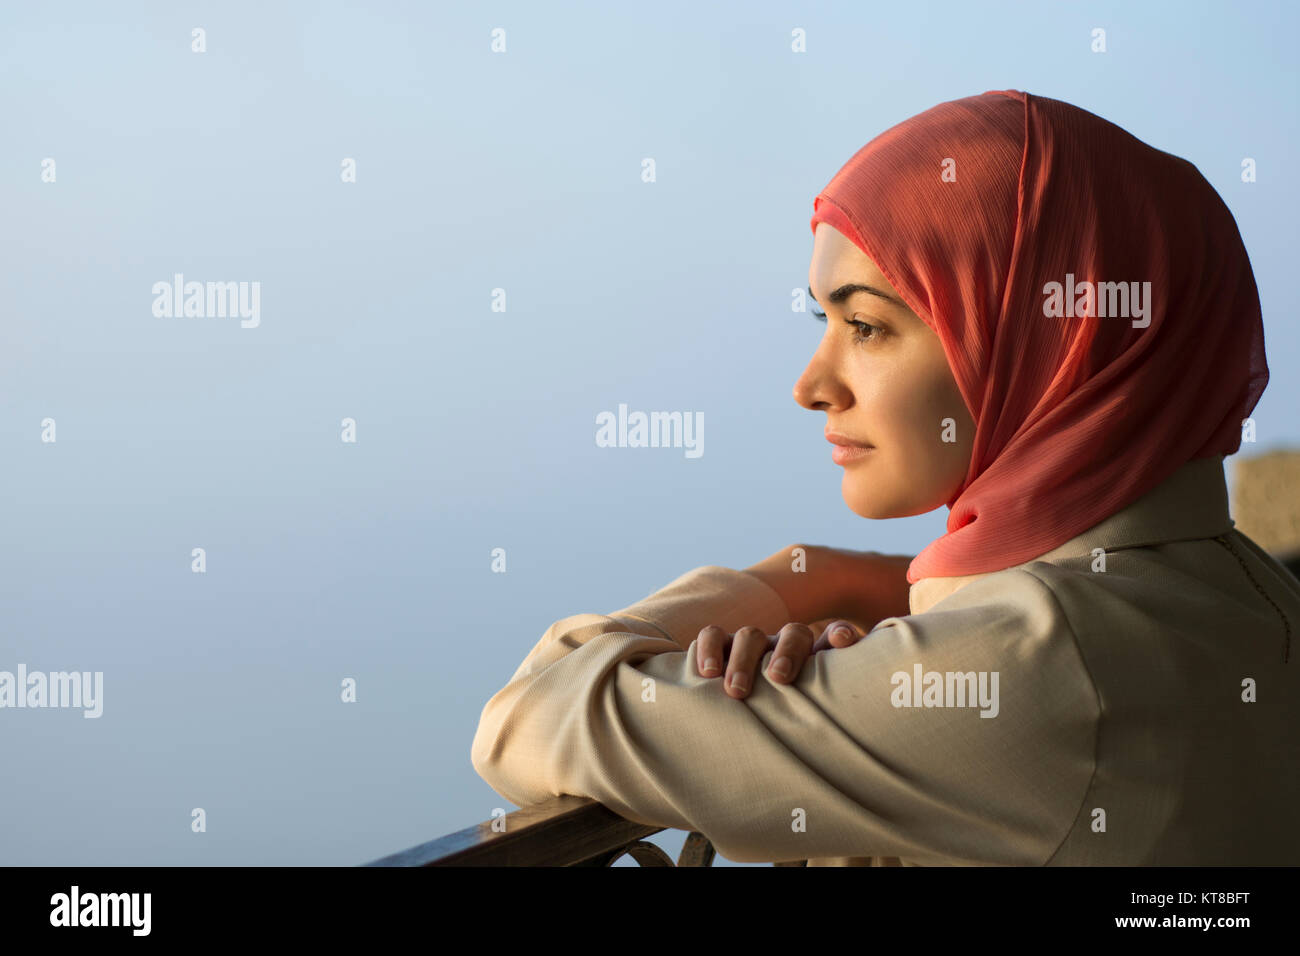 Muslim woman wearing hijab looking away outdoors Stock Photo - Alamy